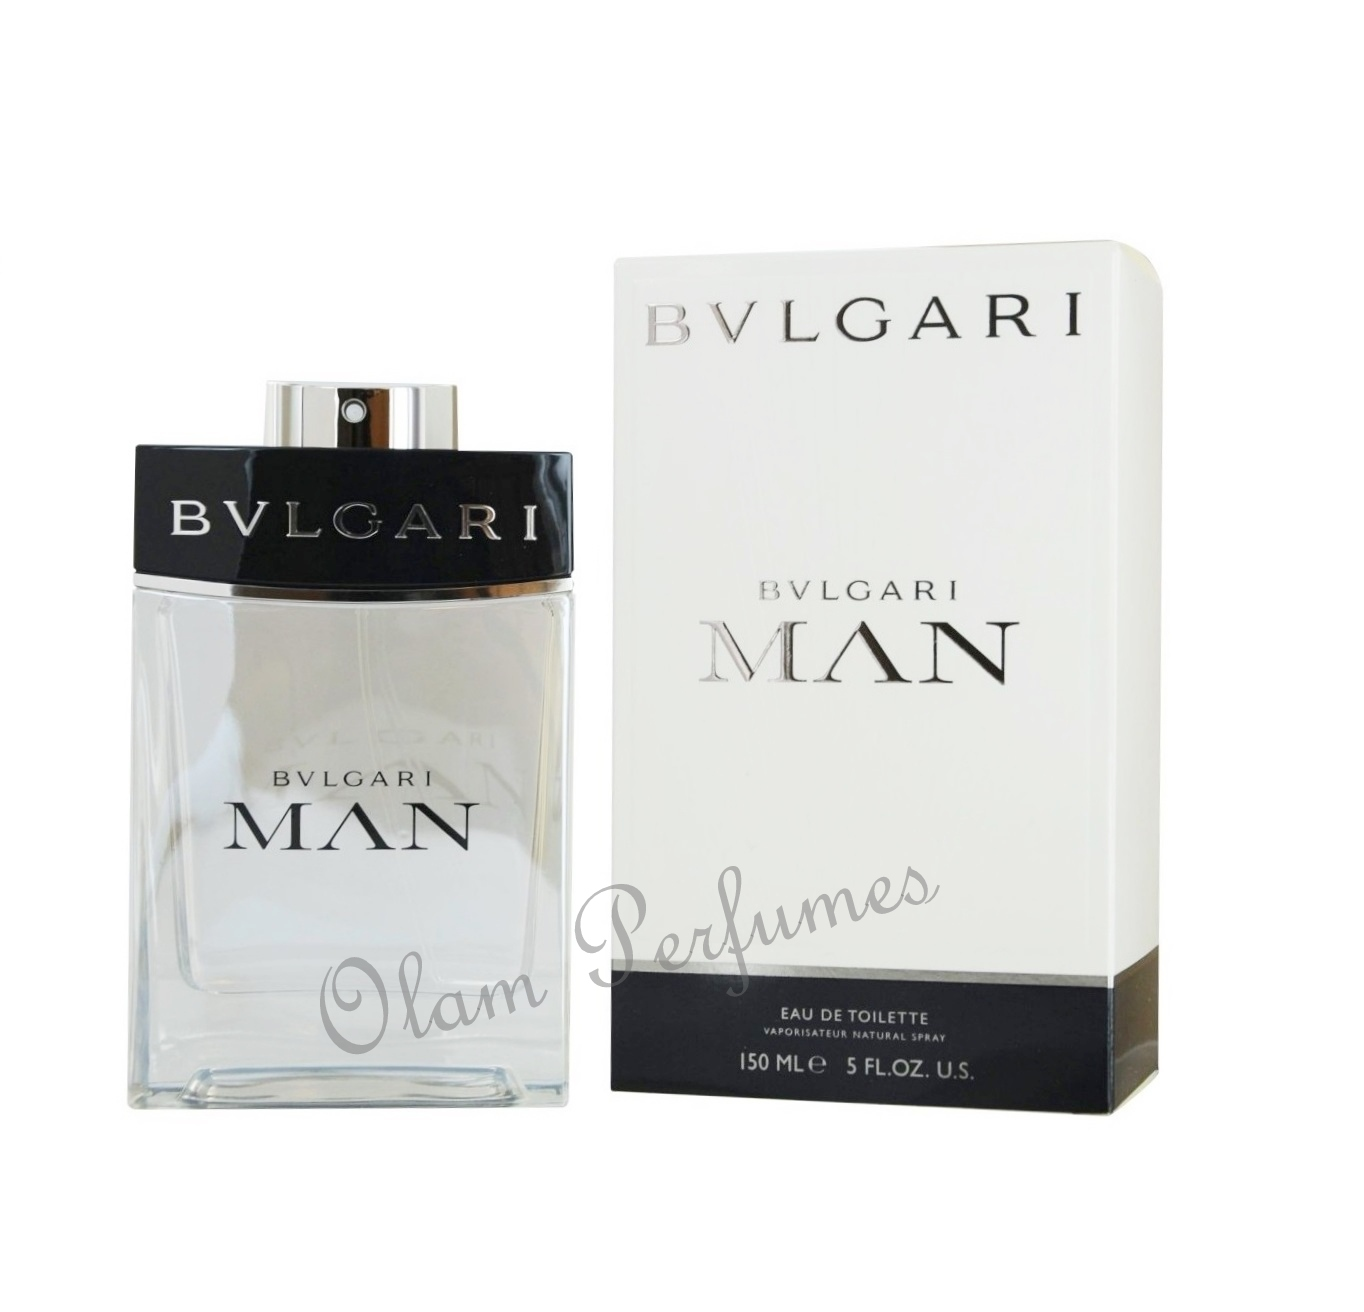 Bvlgari Man Eau de Toilette Spray 5.0oz 150ml